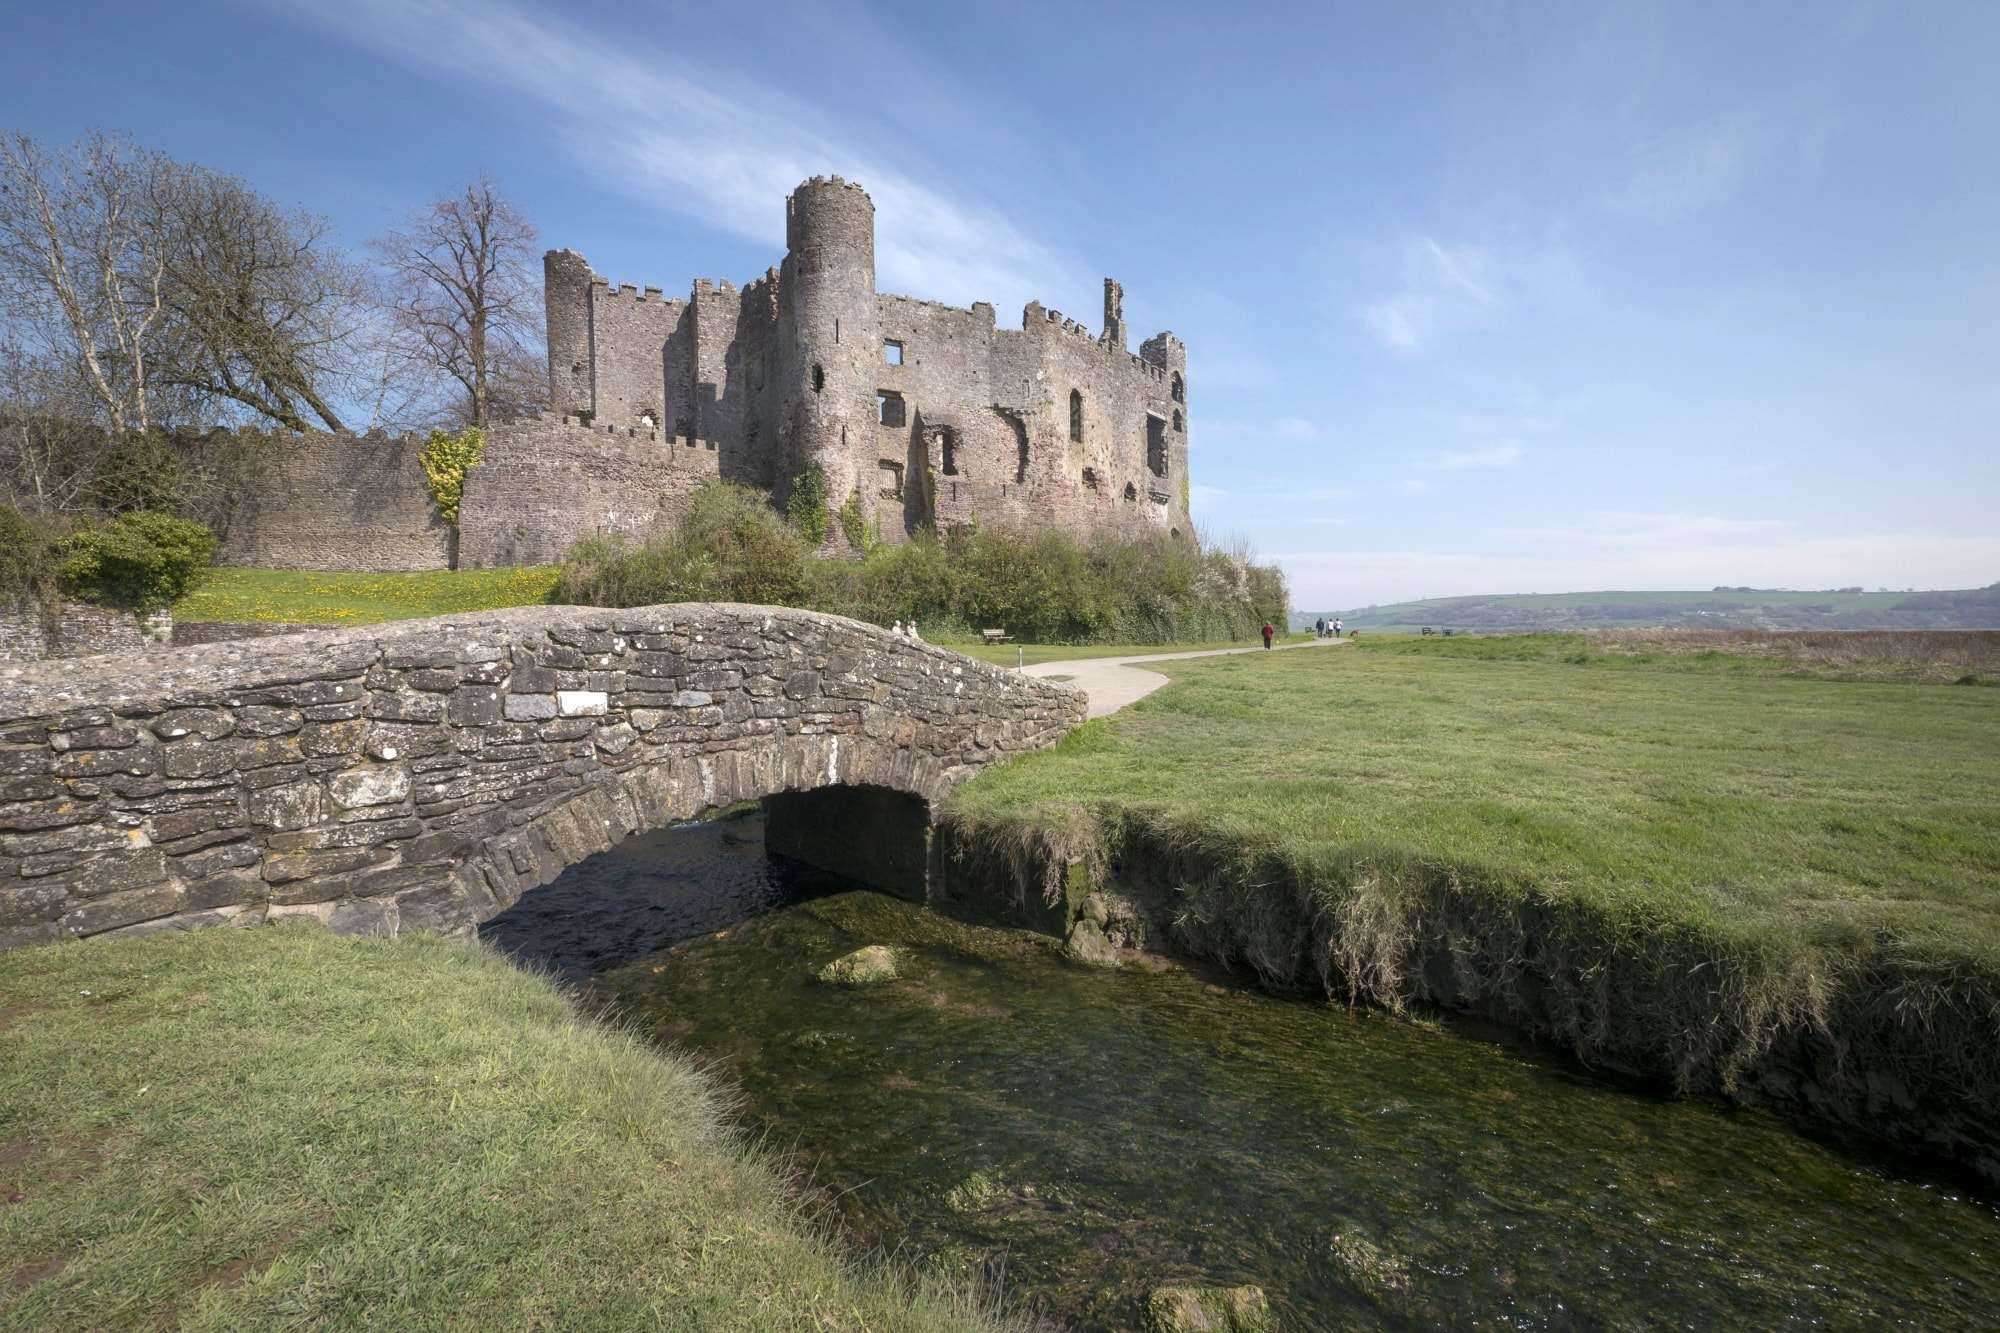 Image of Laugharne Castle, with small bridge over the Taf Estuary